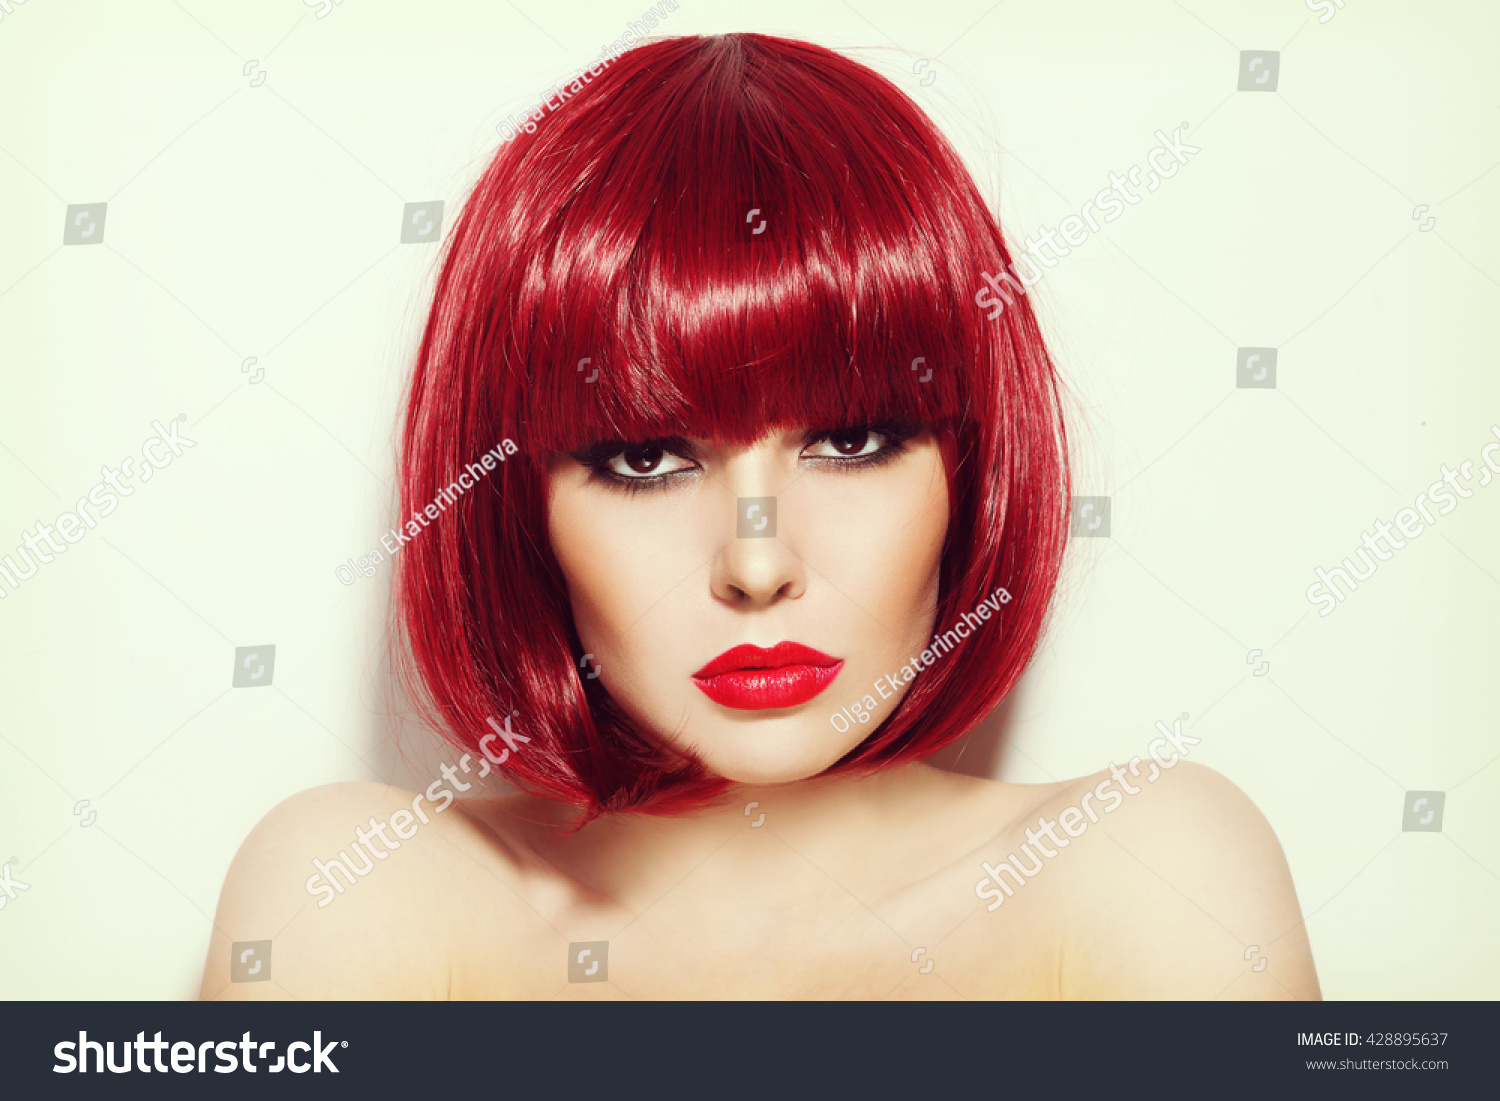 Vintage Style Portrait Of Young Beautiful Sexy Red Haired Girl With